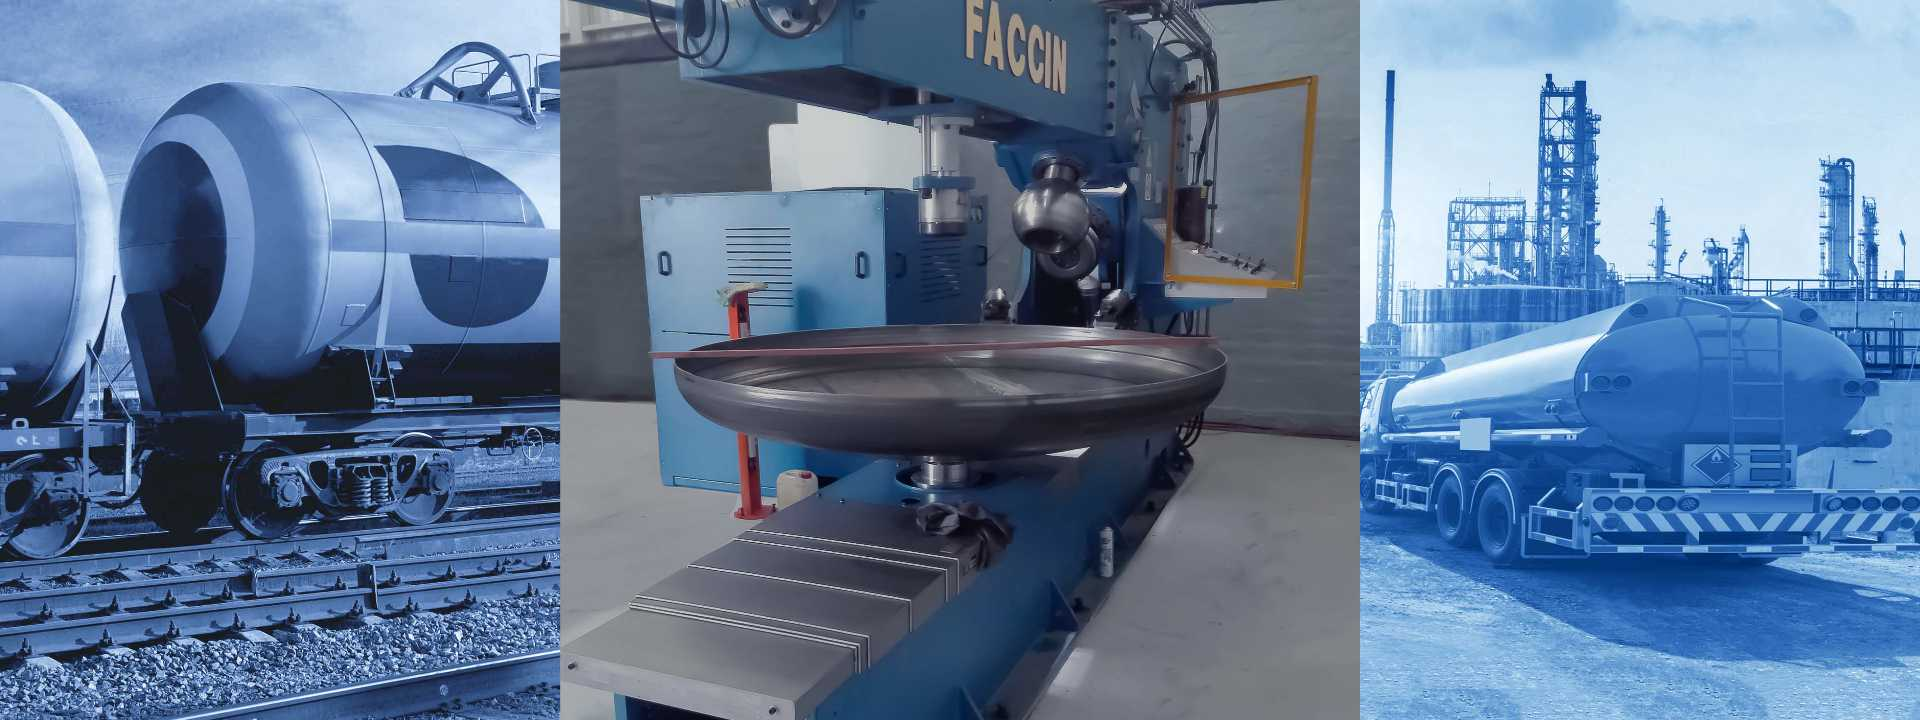 Faccin special machines for metal forming